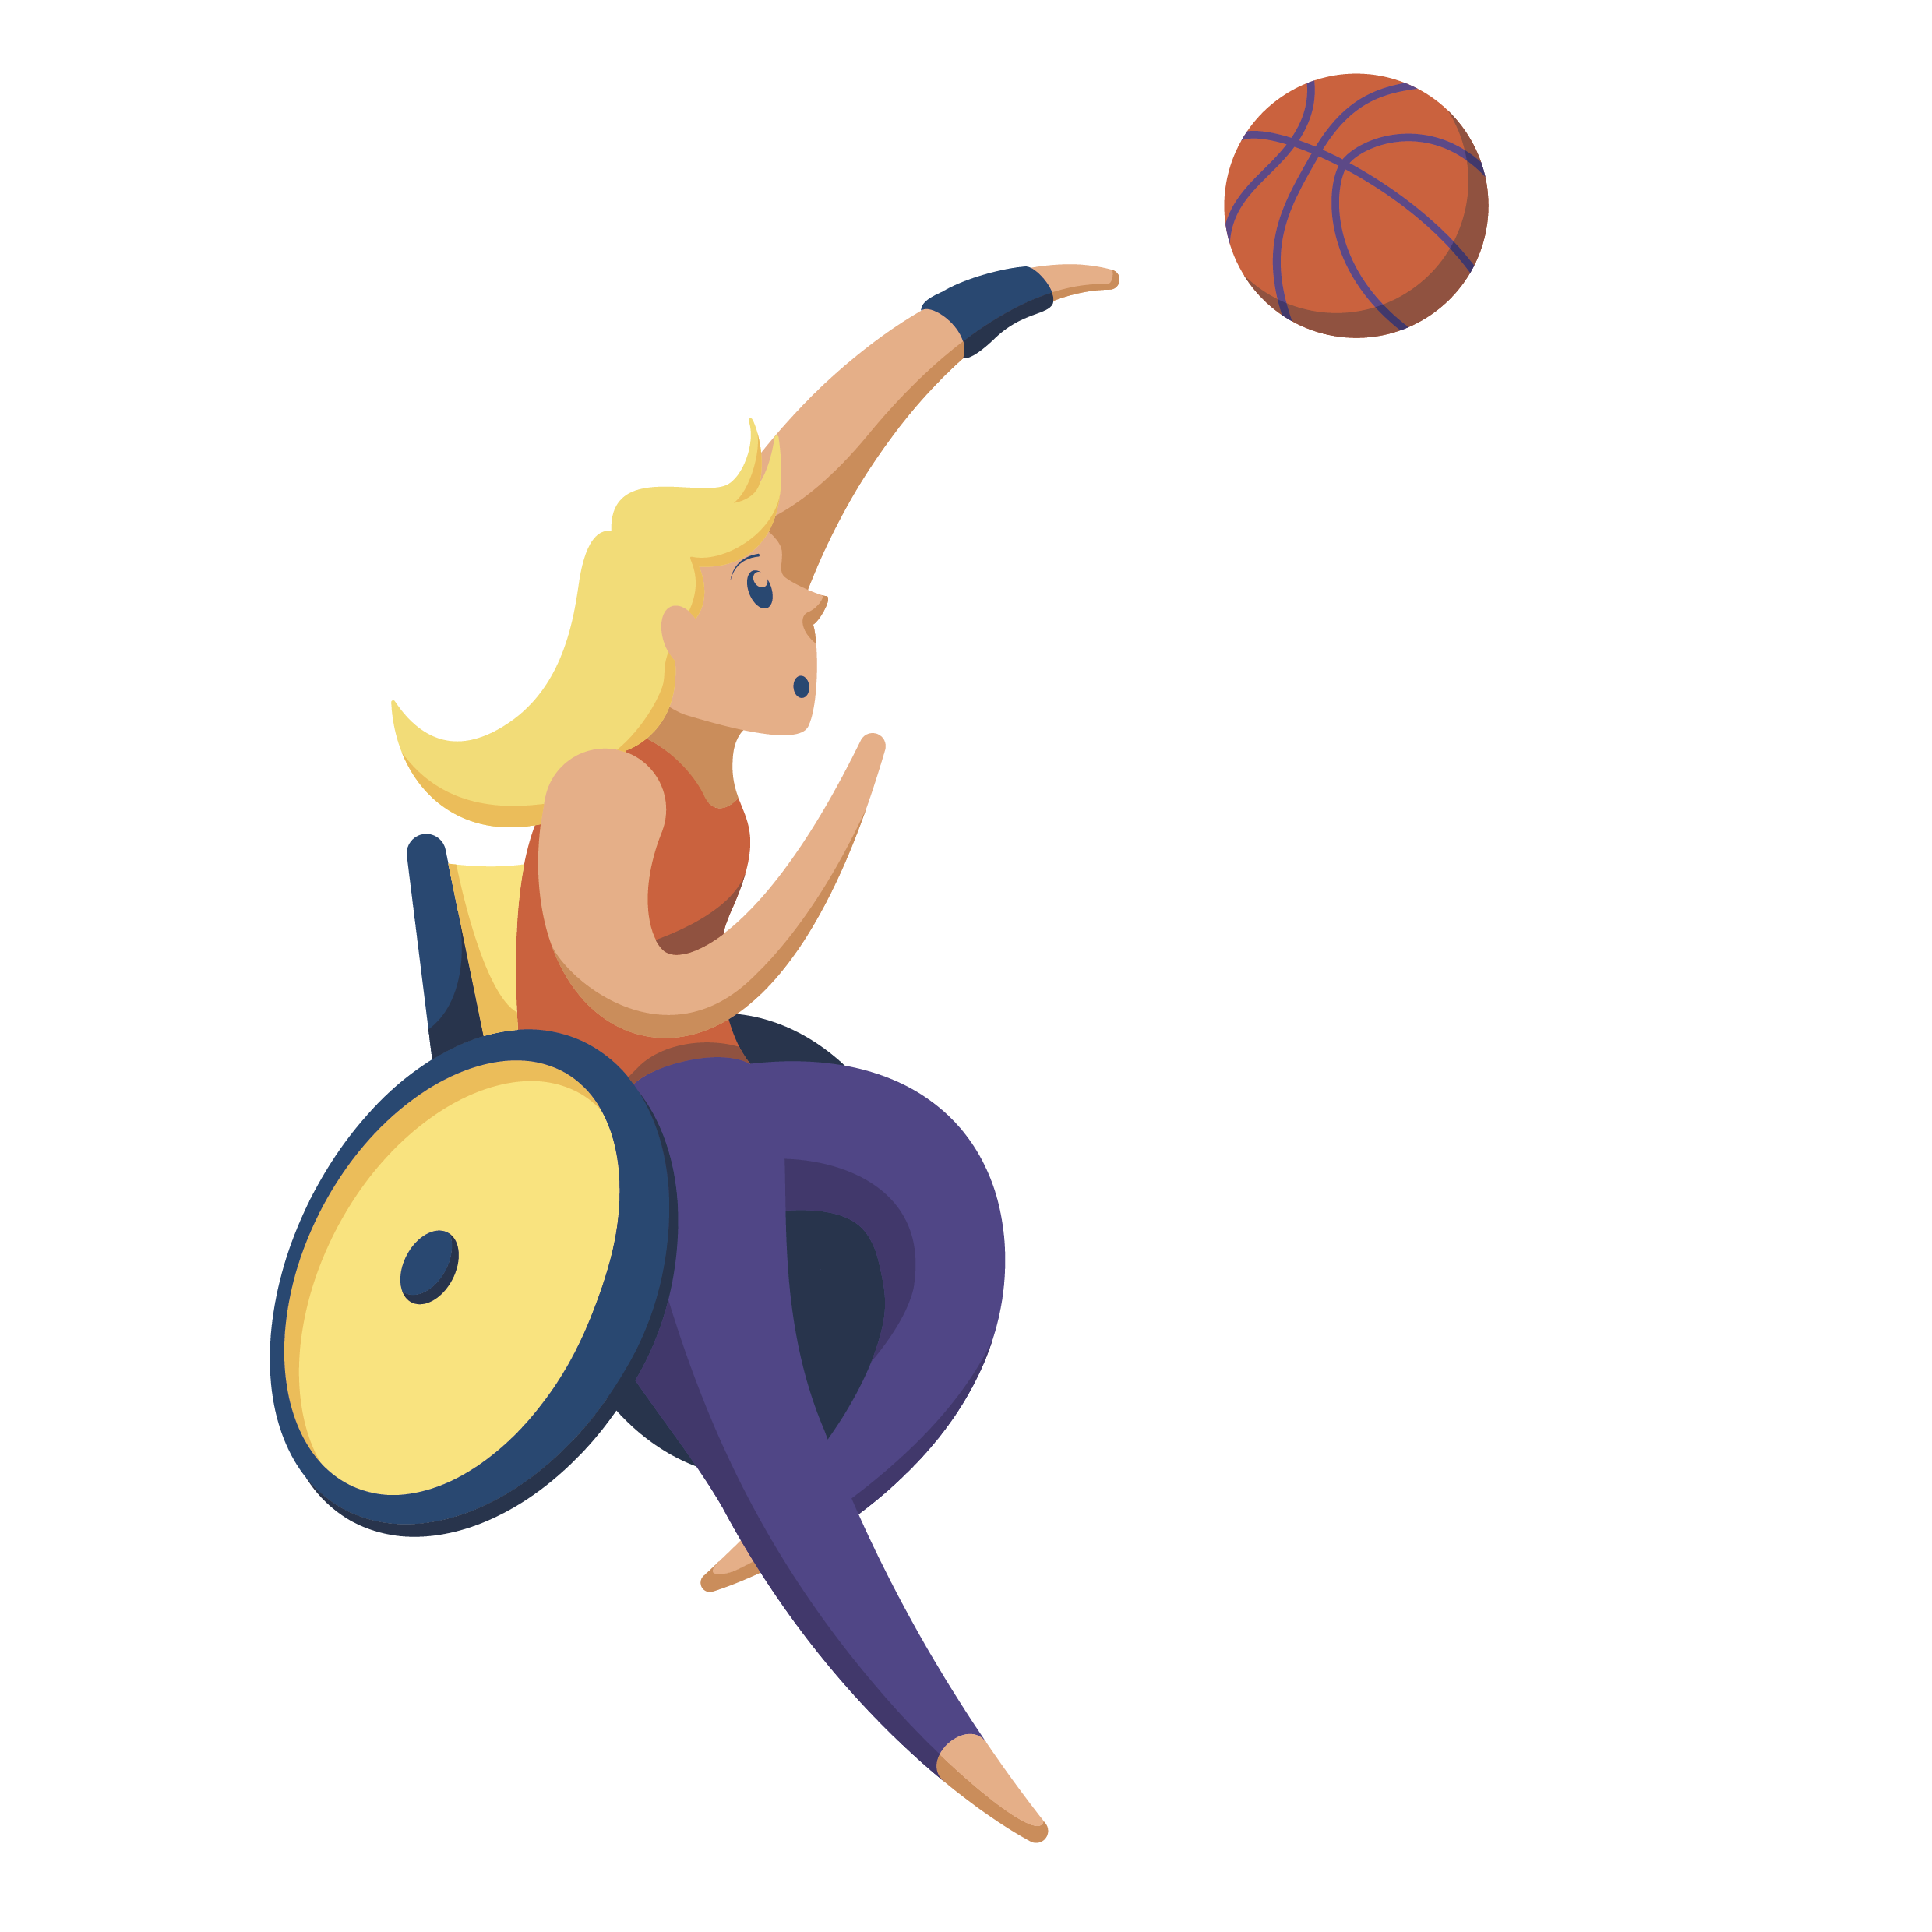 Basketball and volleyball clipart jpg stock Index of /wp-content/uploads/2017/05 jpg stock